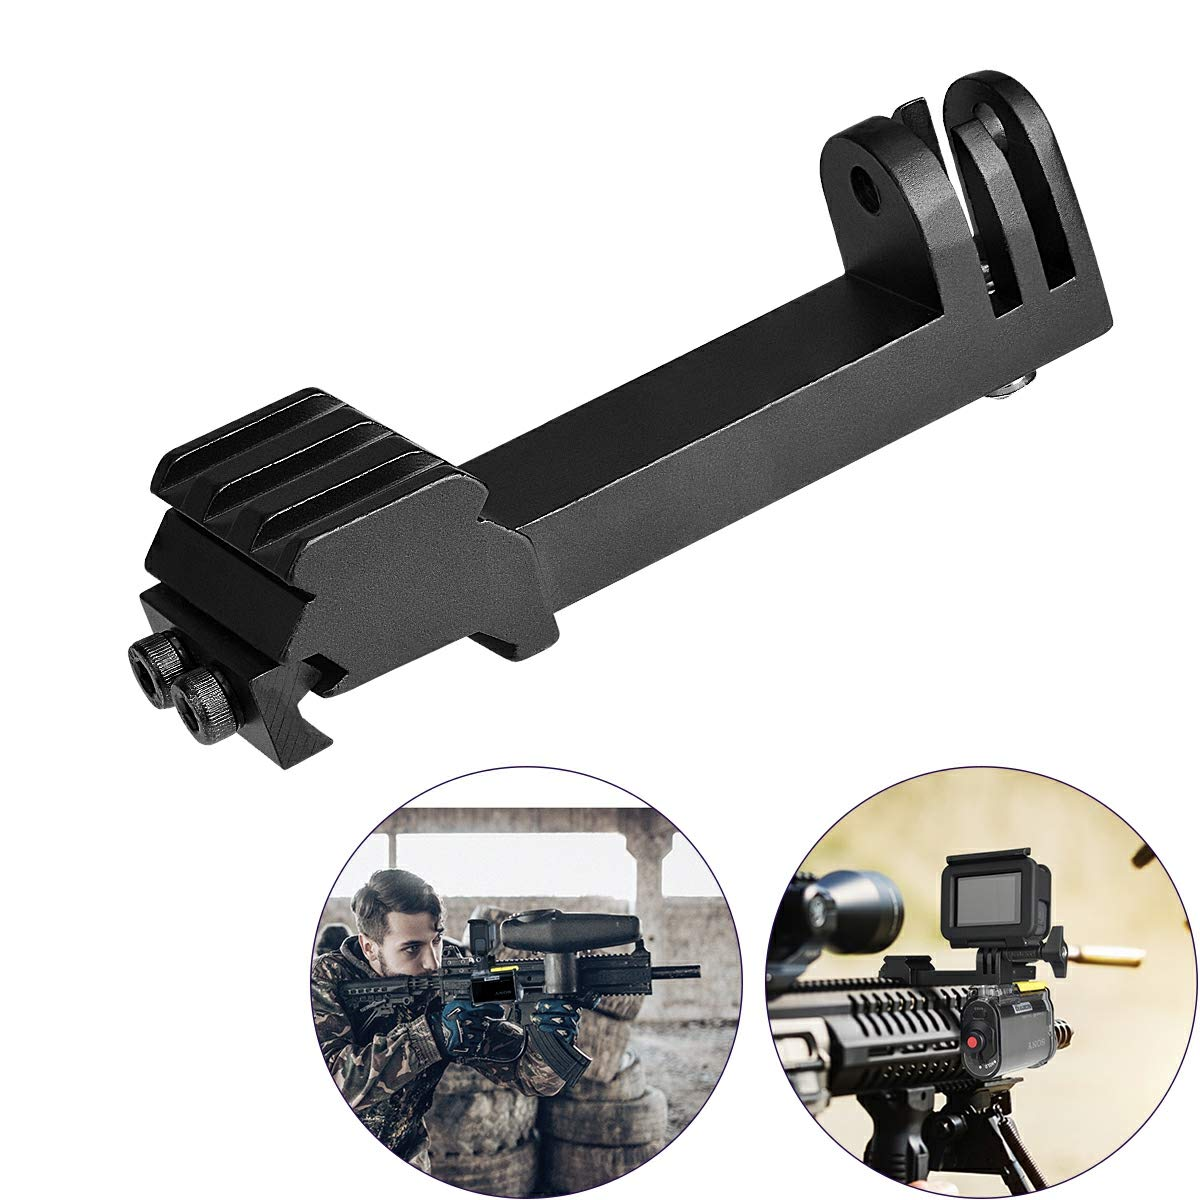 2in1 Action Camera Gun Mount, Picatinny Rail Adapter Compatible for Gopro Hero 7/ 6/ 5/ 4/ 3+/ 3/ Session Sony Sports Camera and Other Cameras for Hunting Gun Shotgun Airsoft Gun Air Rifle Pistol Carbine Gun & More Victool VTG-1705EU-T1